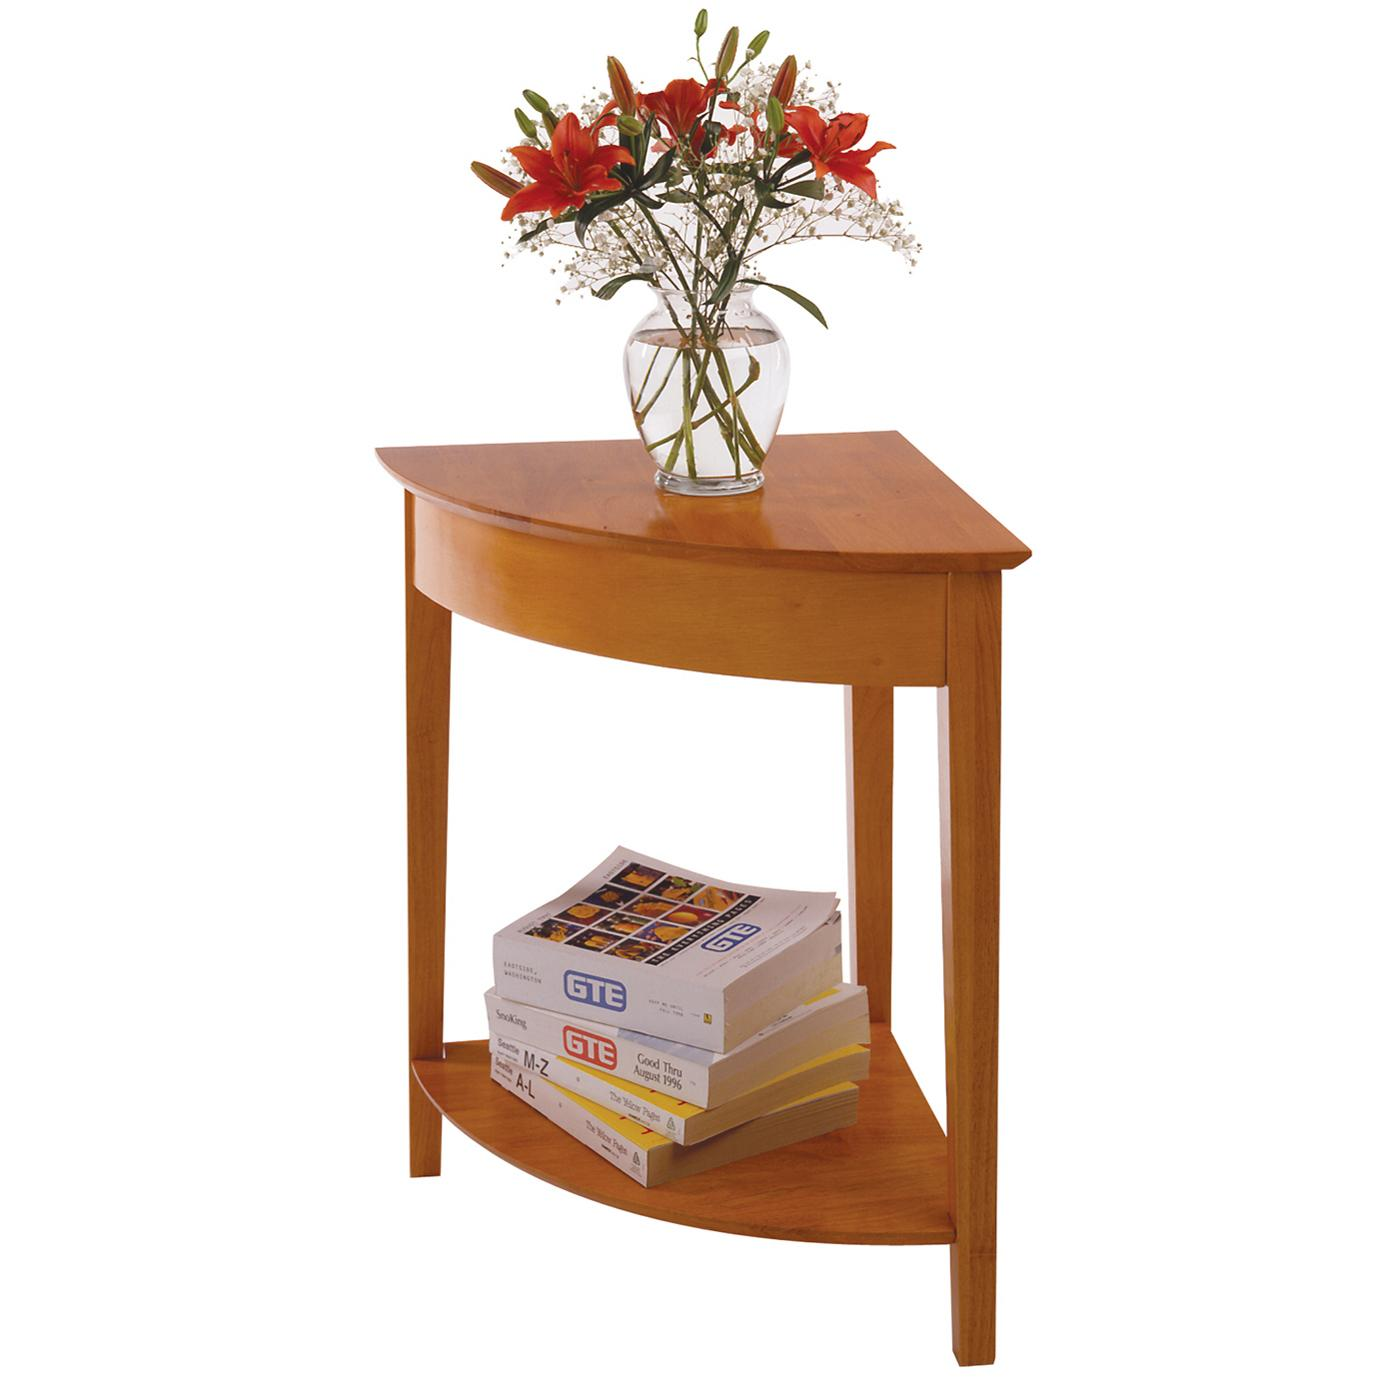 Winsome wood studio corner table ojcommerce - Corner tables for living room online ...